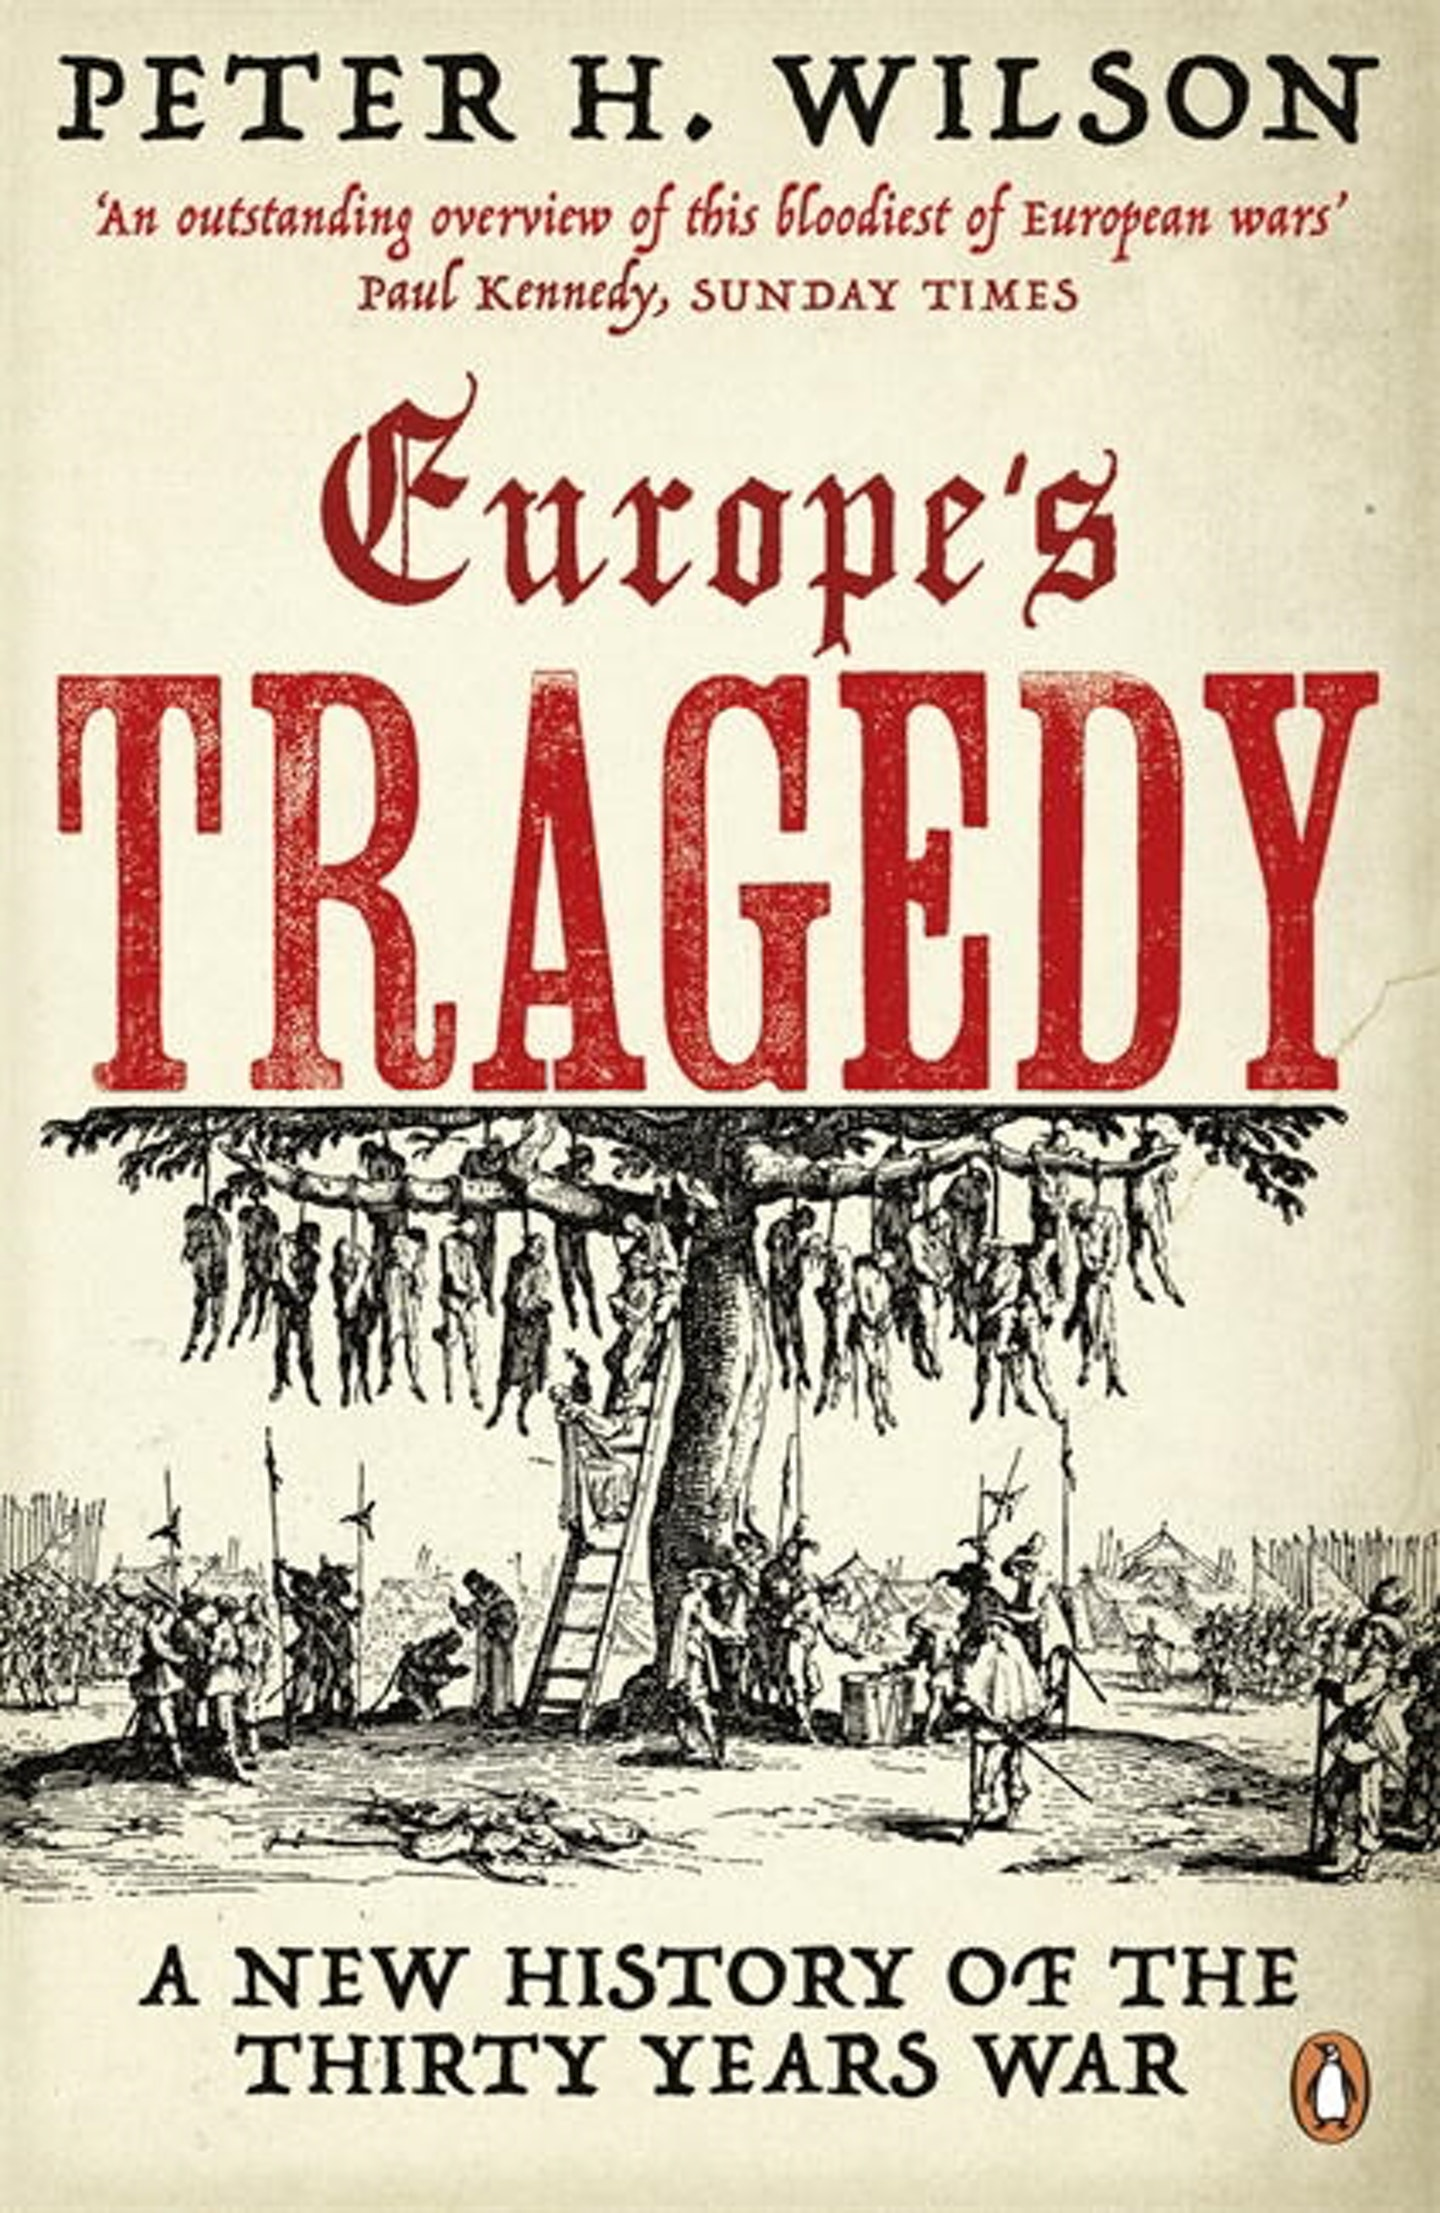 a history of the thirty years war a series of european conflicts from 1618 to 1648 The thirty years war was a smaller series of wars that were fought between 1618 and 1648 mainly in the thirty years war, an all european conflict with more.